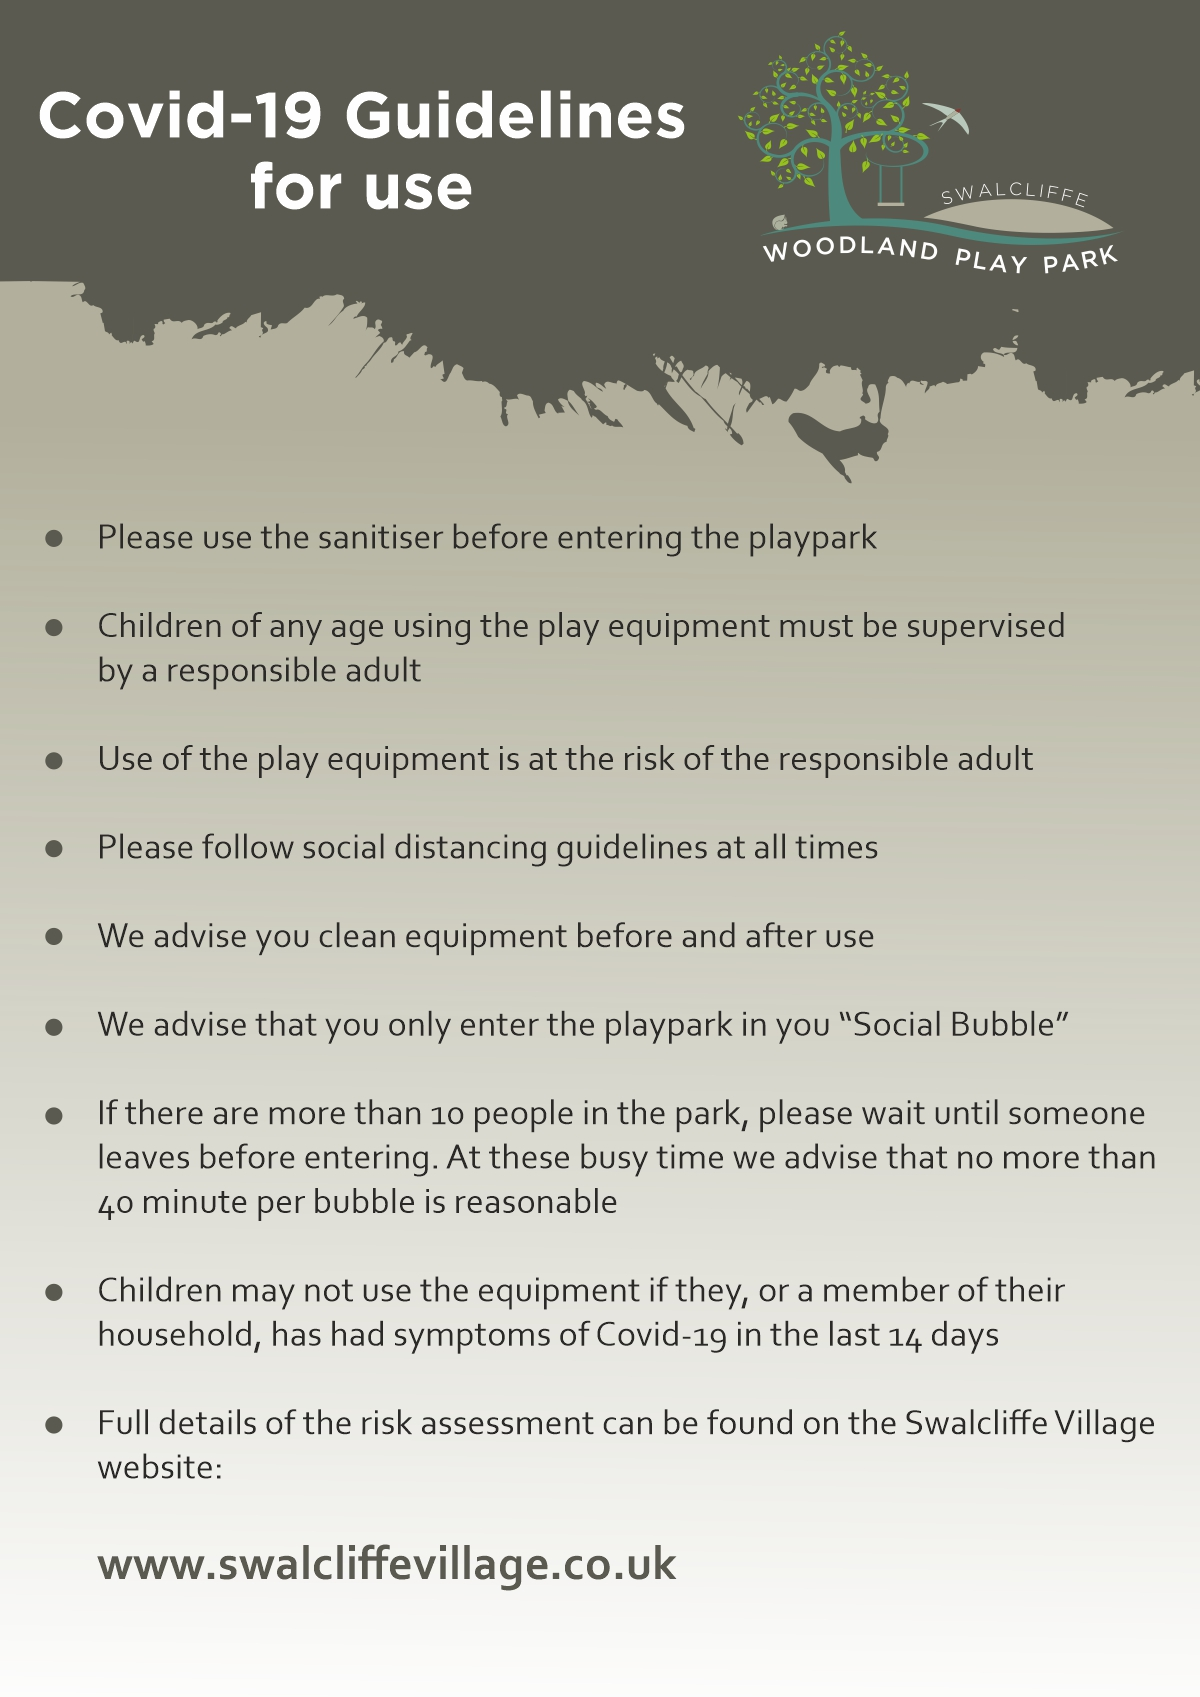 Reopen Notice of the woodland play park